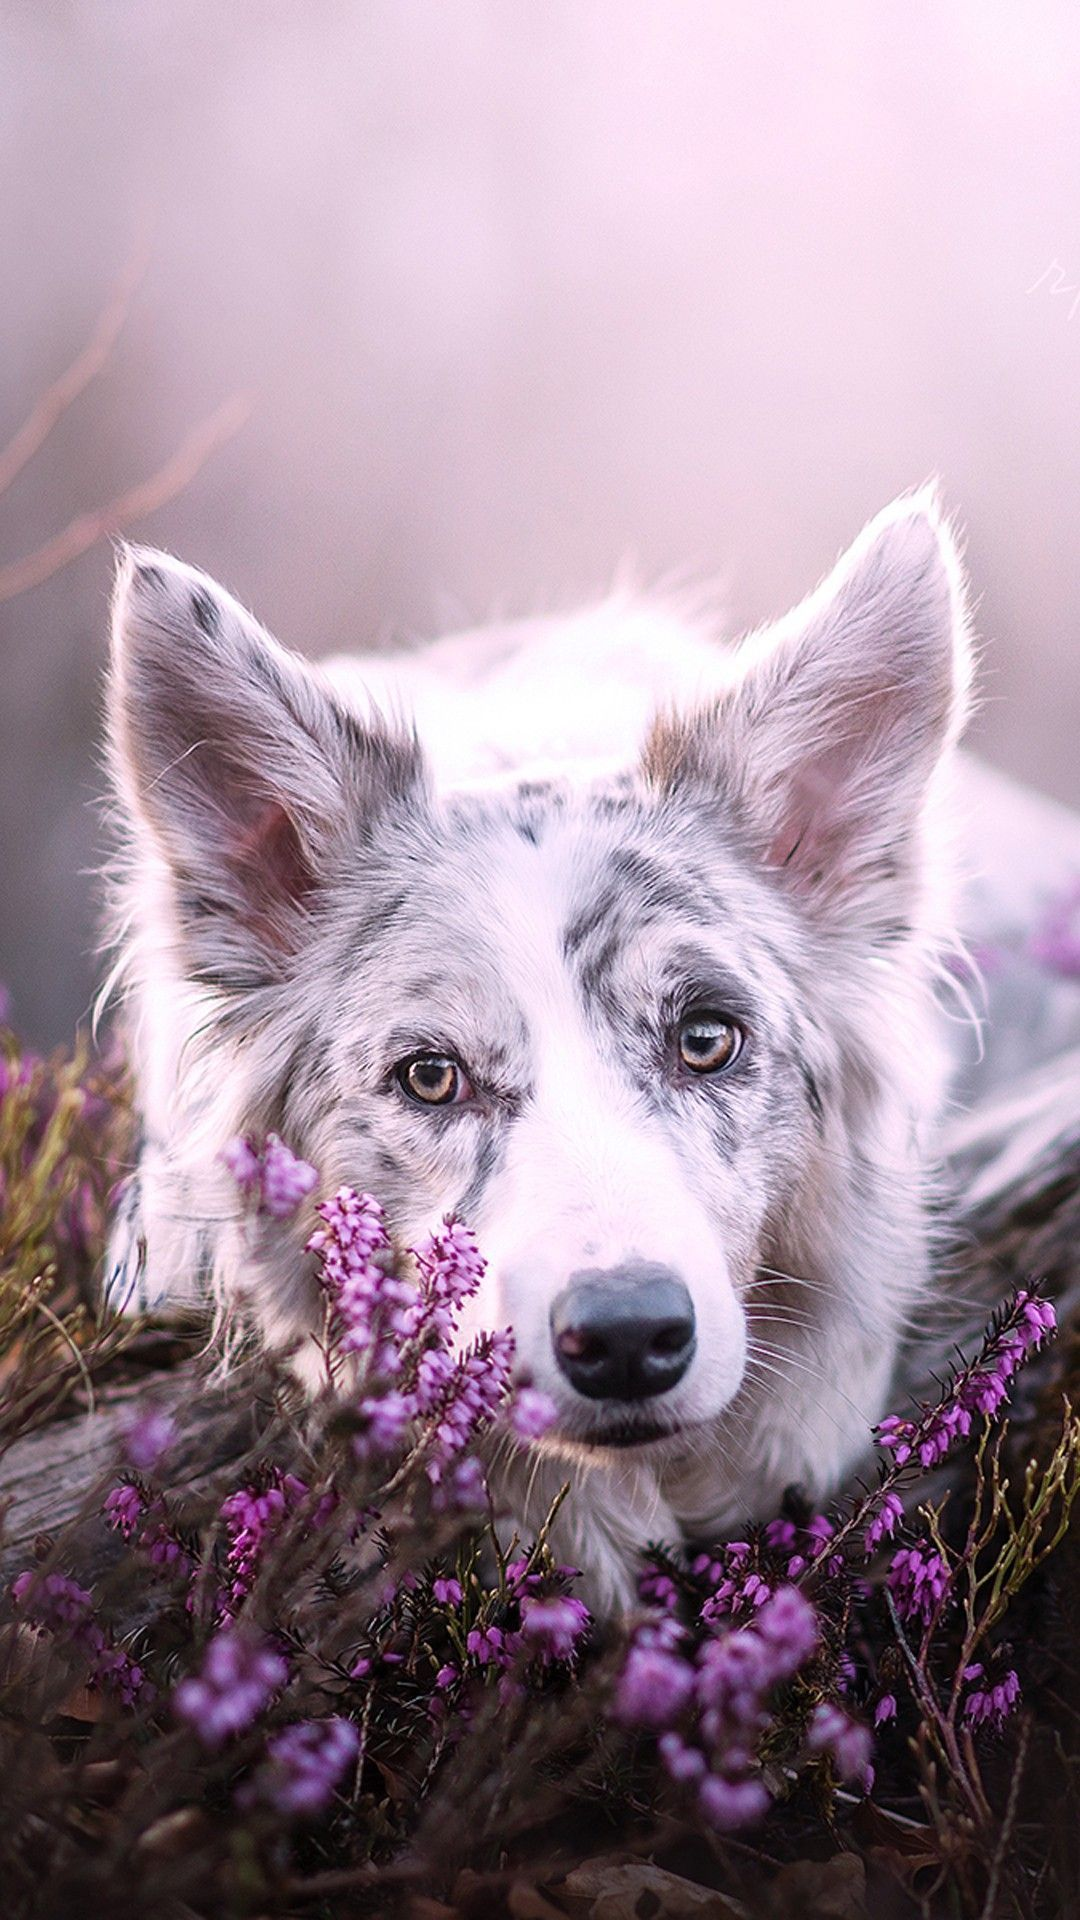 Dog Wallpapers Are Added Beautiful And Cute Dogs For Your Mobile Phone Follow Us On Facebook For More Beautiful Wallpapers Dog Background Cute Dogs Animals